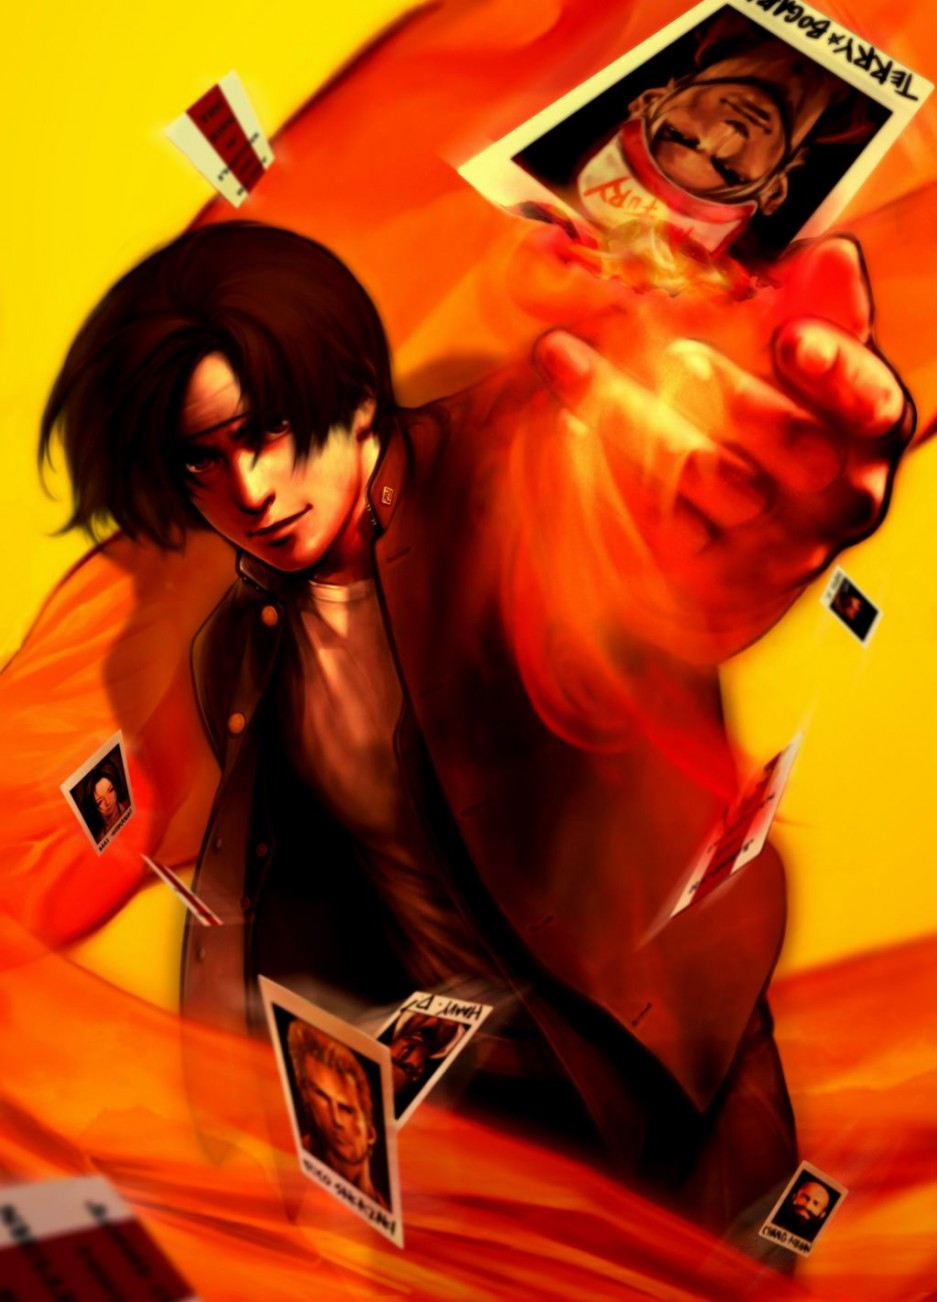 Chaos Wallpaper Hd The King Of Fighters 94 Re Bout Tfg Profile